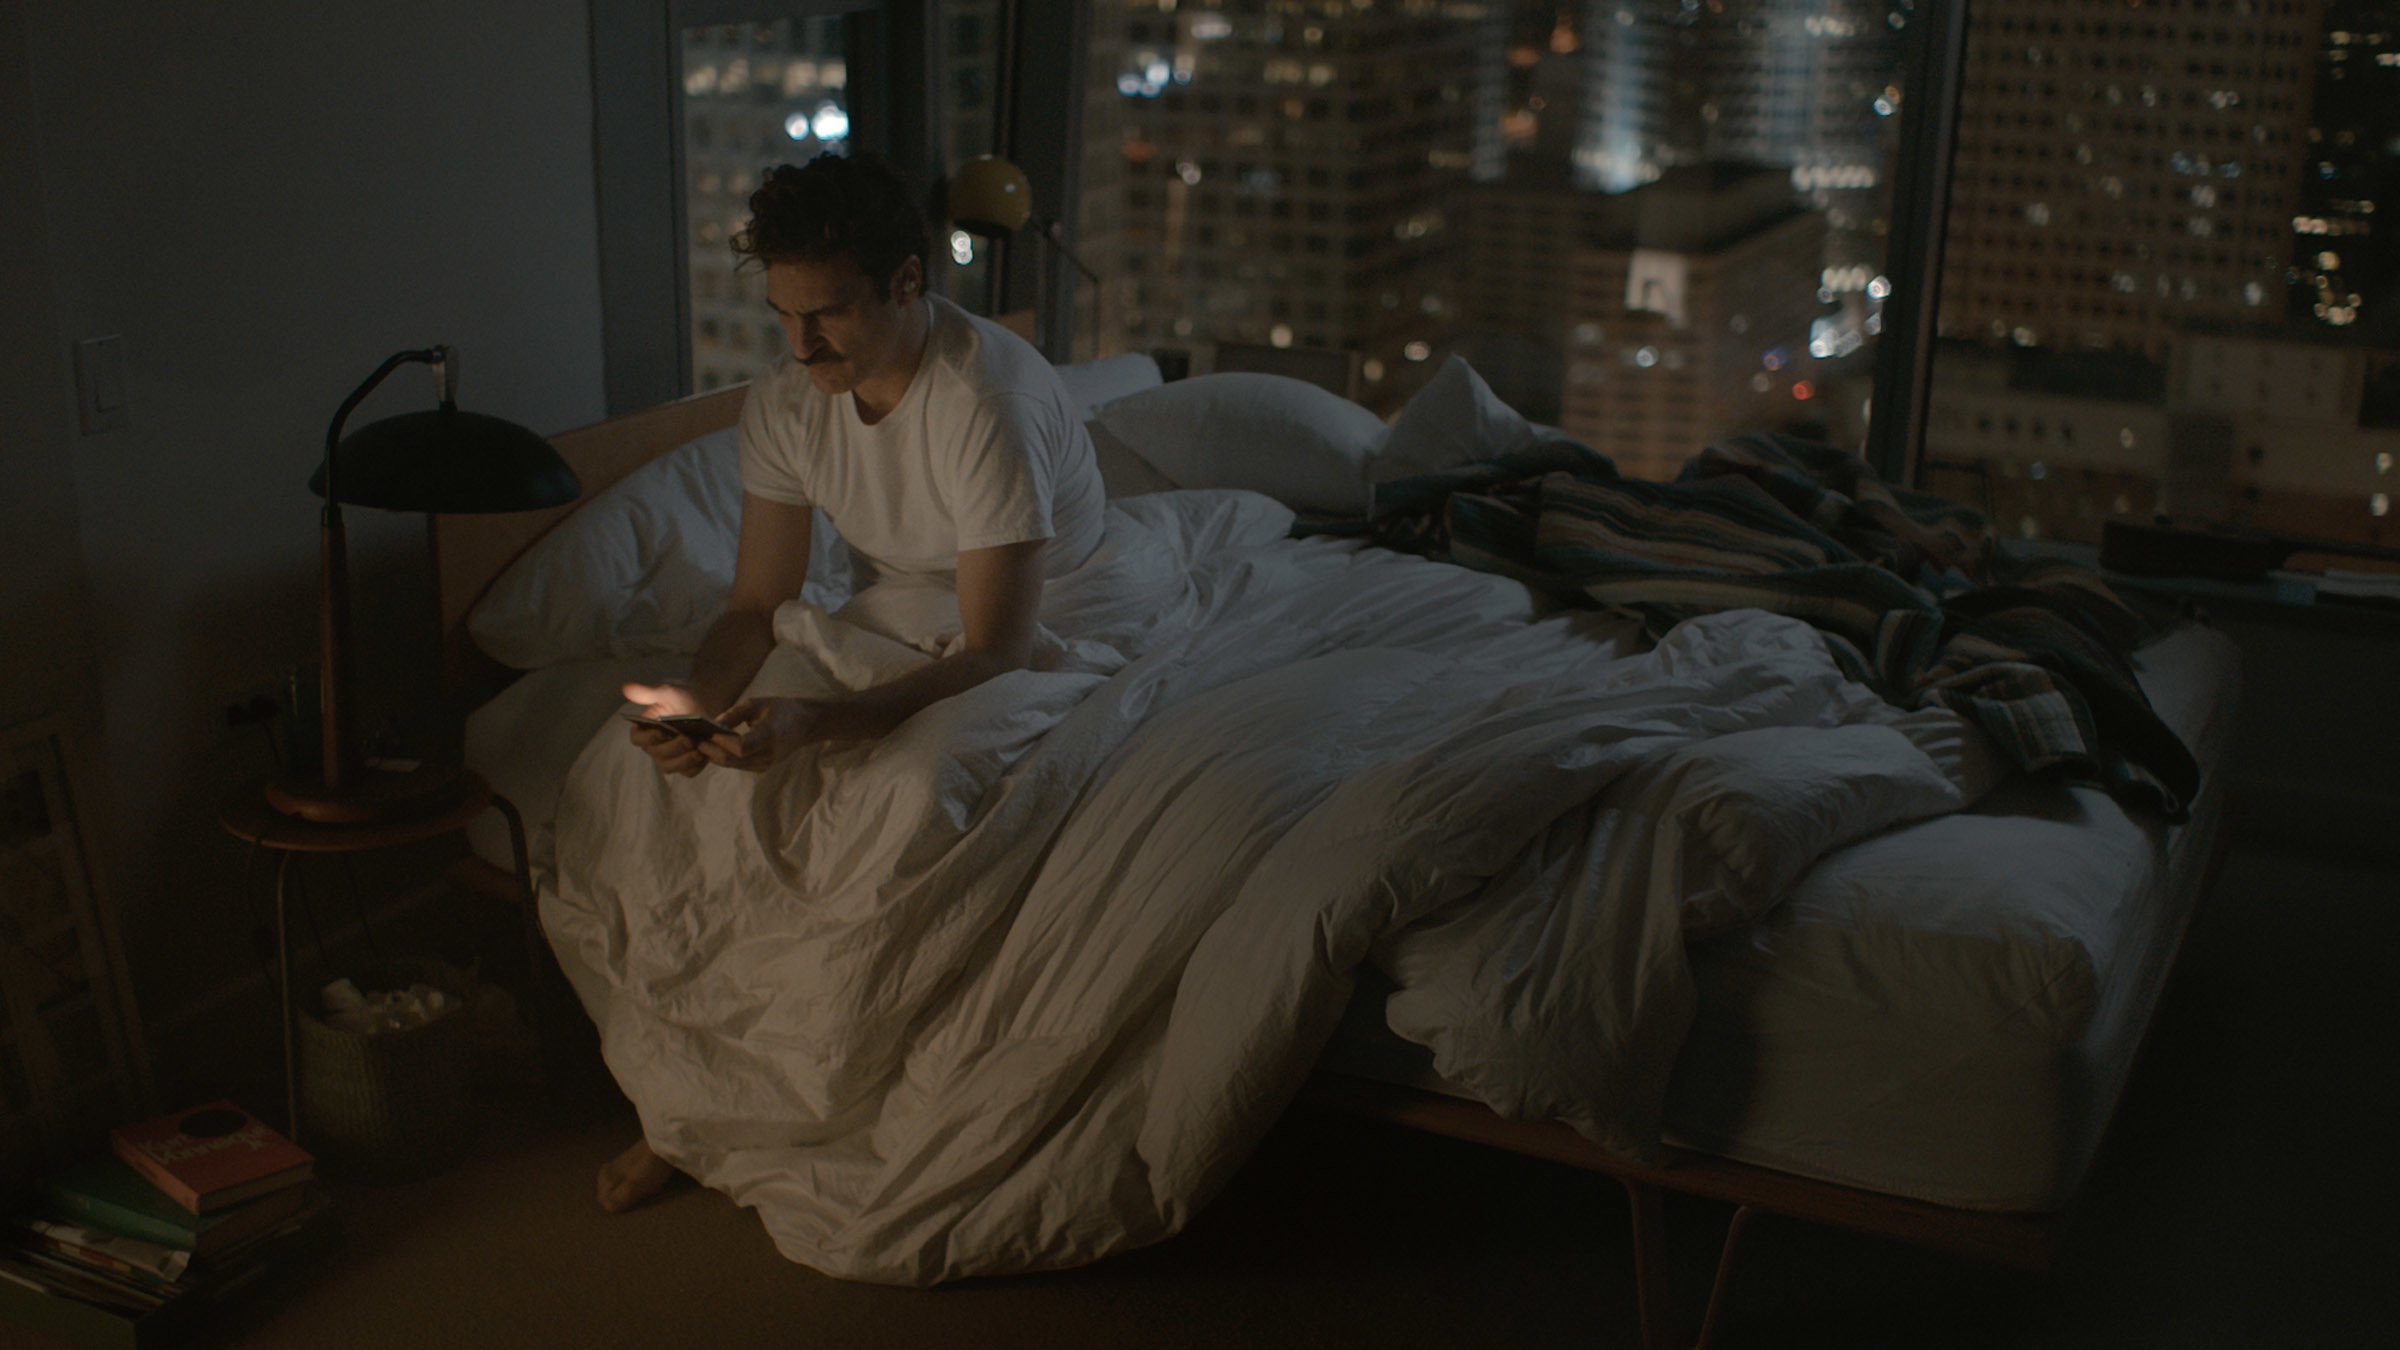 An image from Her showing Theodore in bed looking at his phone